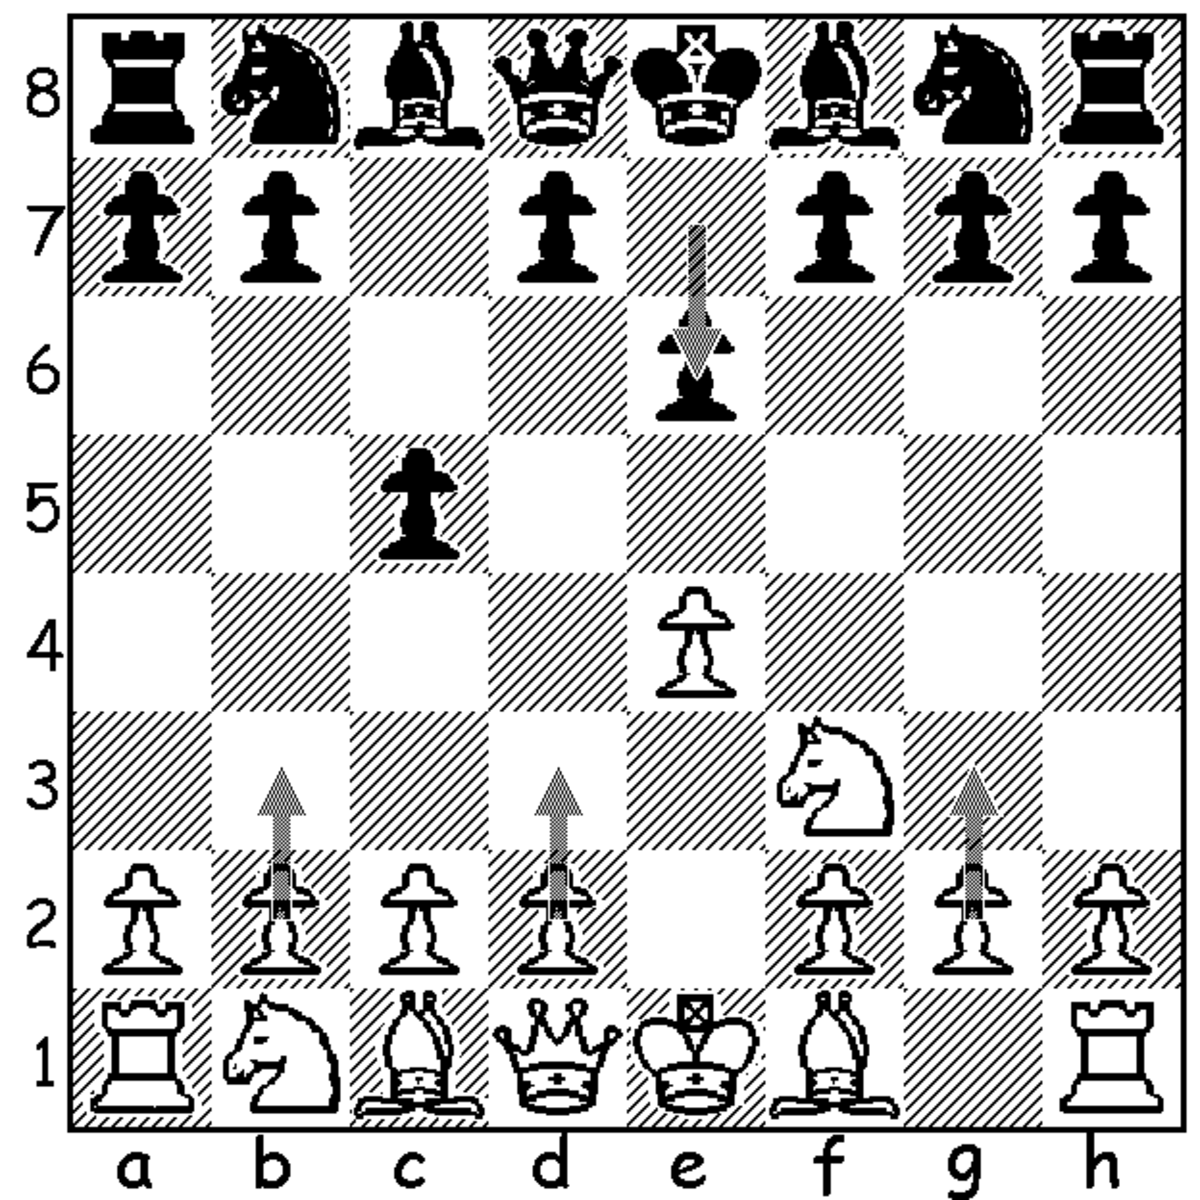 Chess Openings: The Offbeat but Viable Options 3.b3, 3.d3 and 3.g3 for White Against 2...e6 in the Sicilian Defense